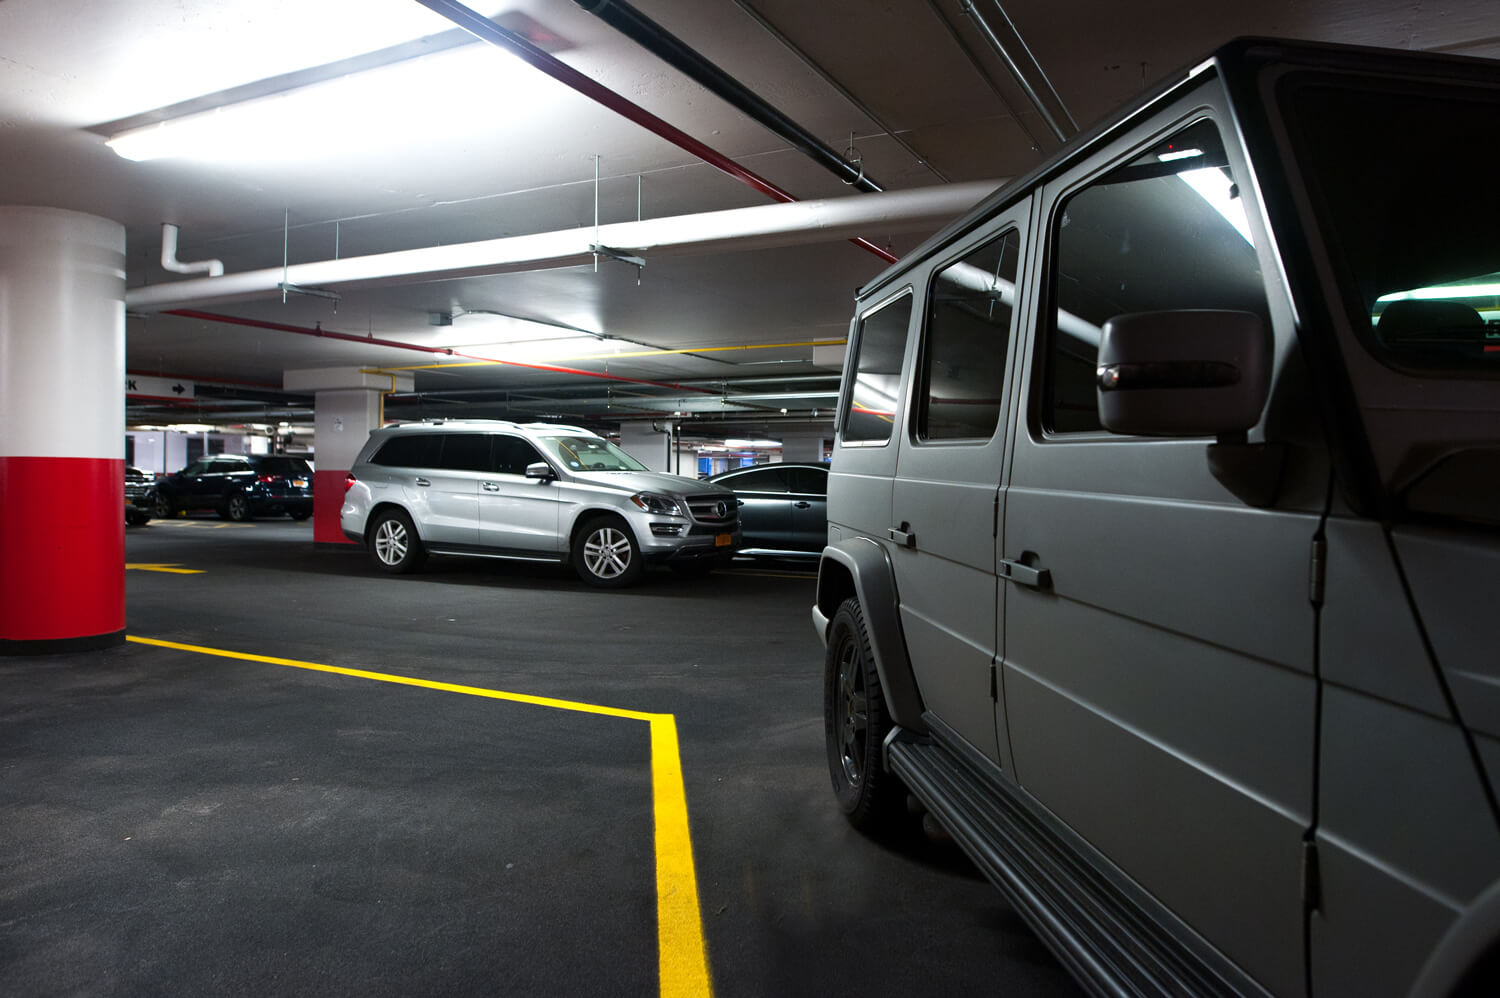 Private Parking Garage